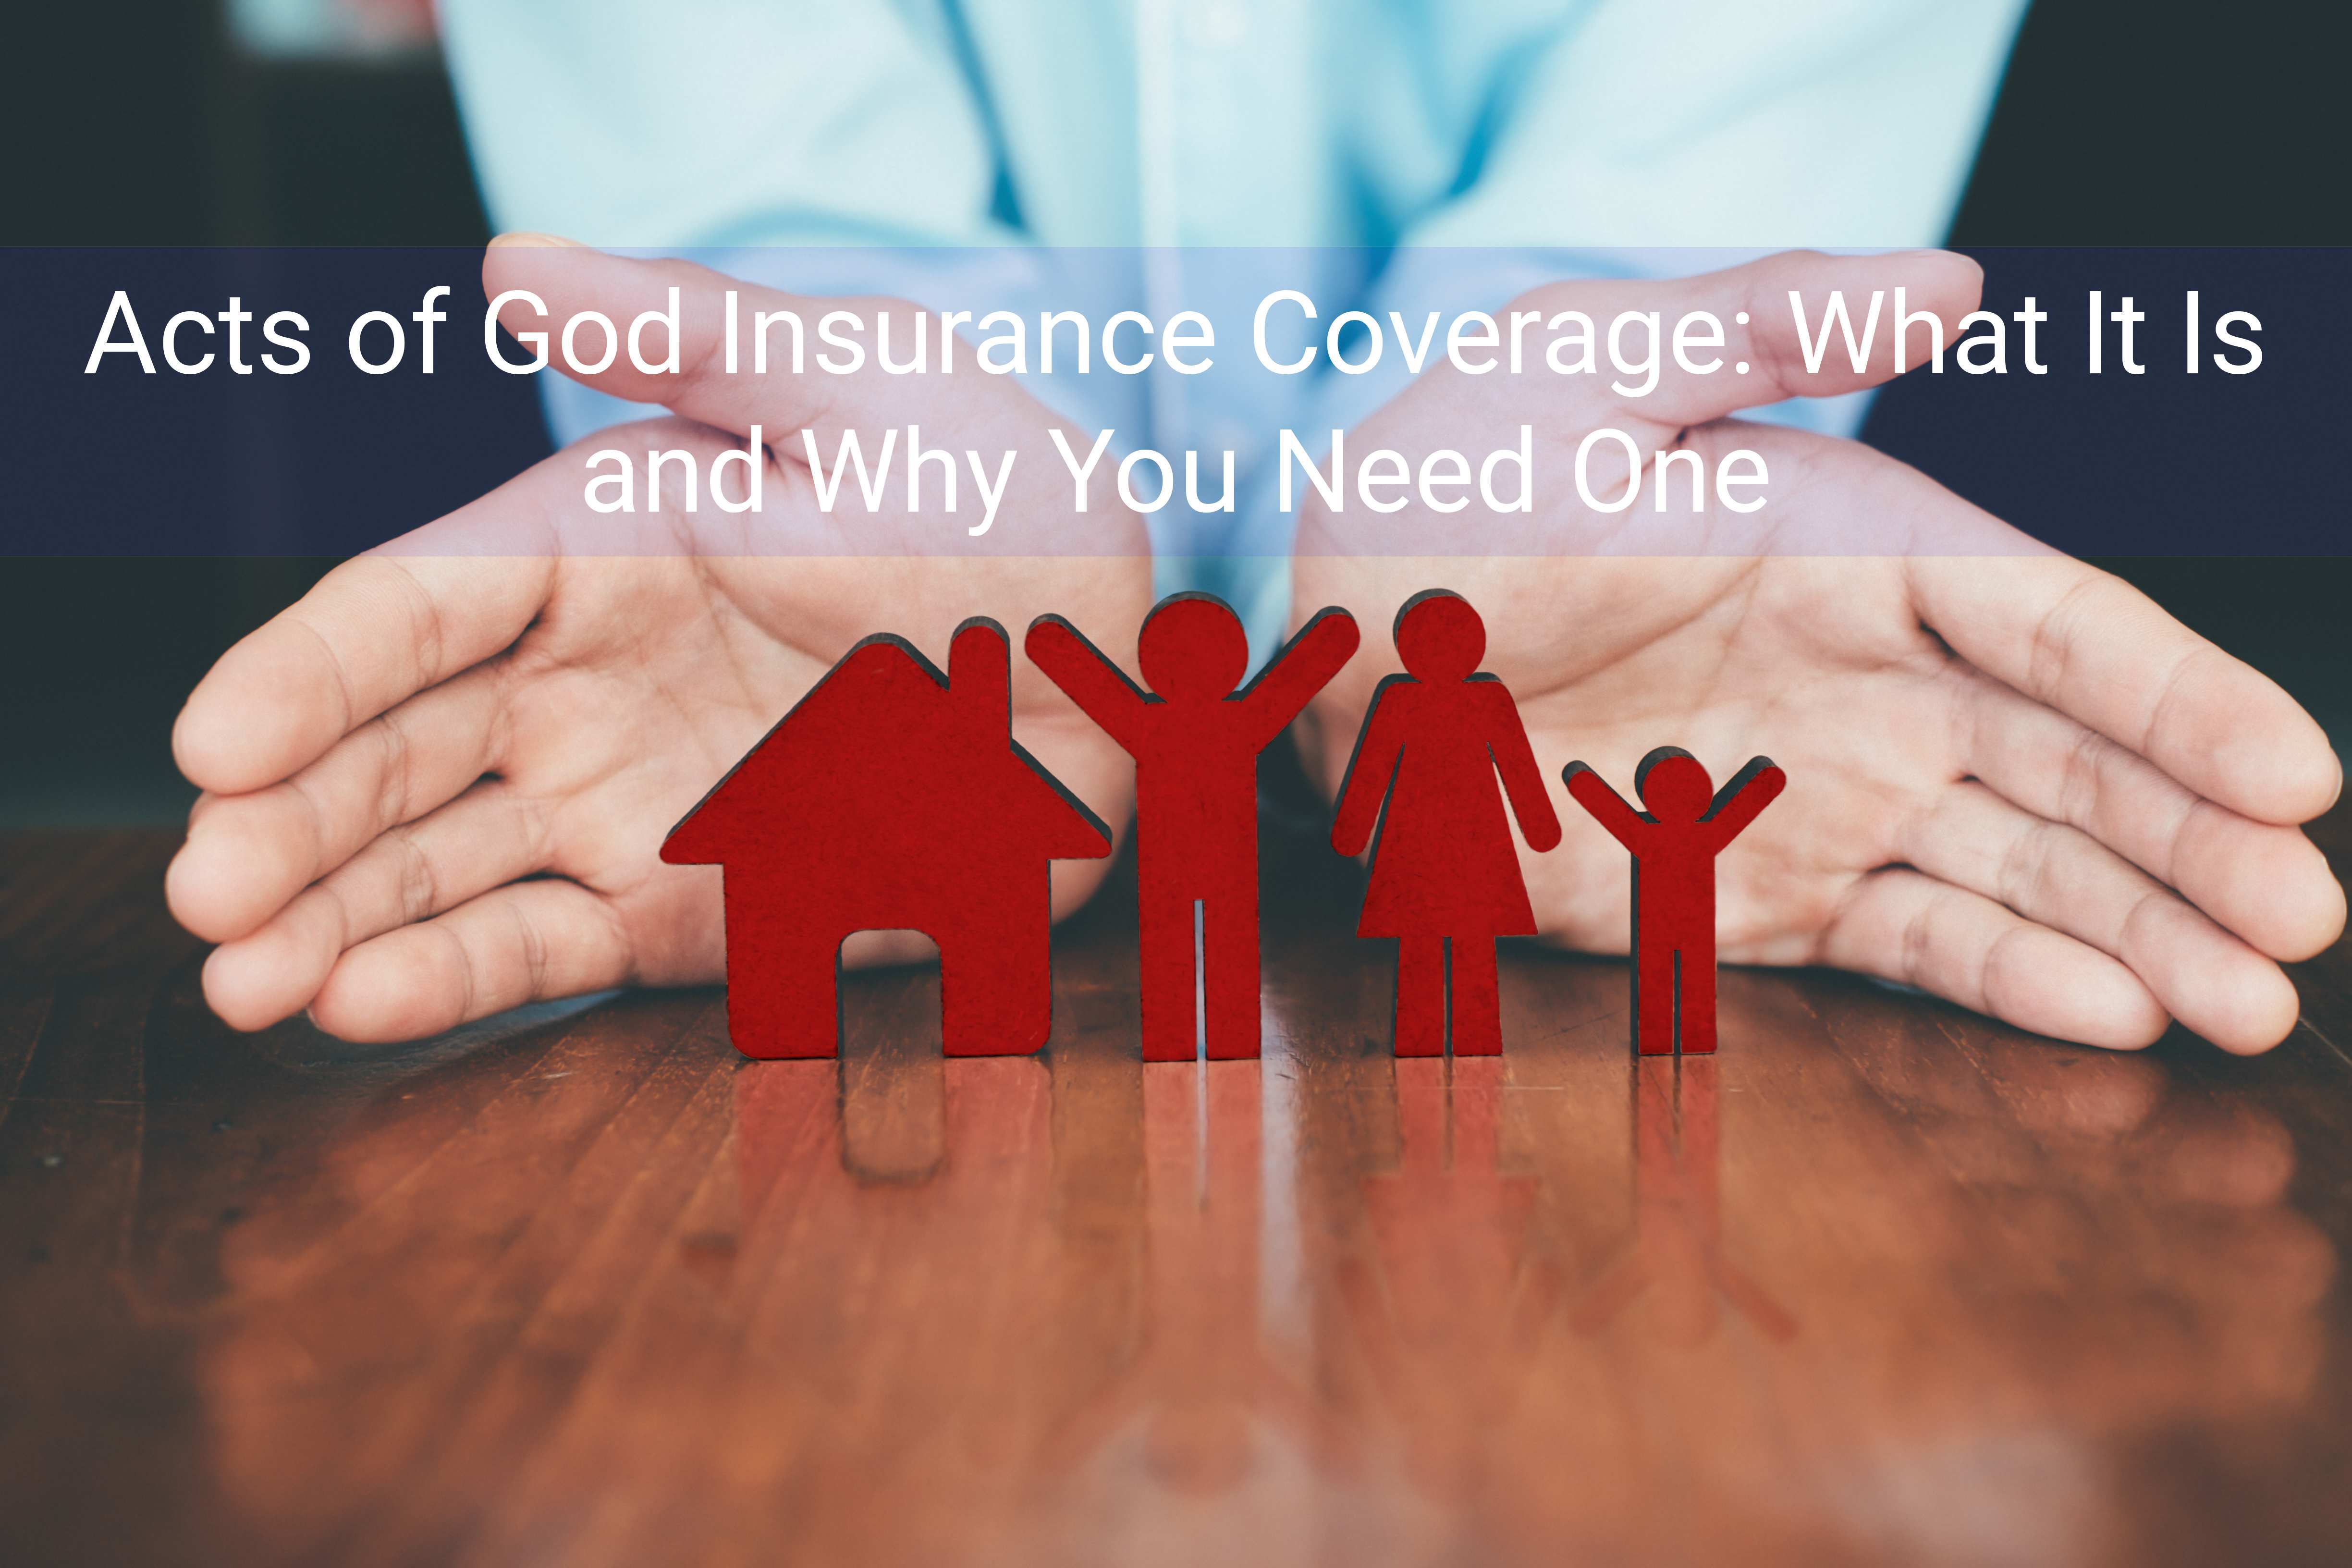 life-house-health-home-family-acts-of-god-insurance-policy-concept-content-image